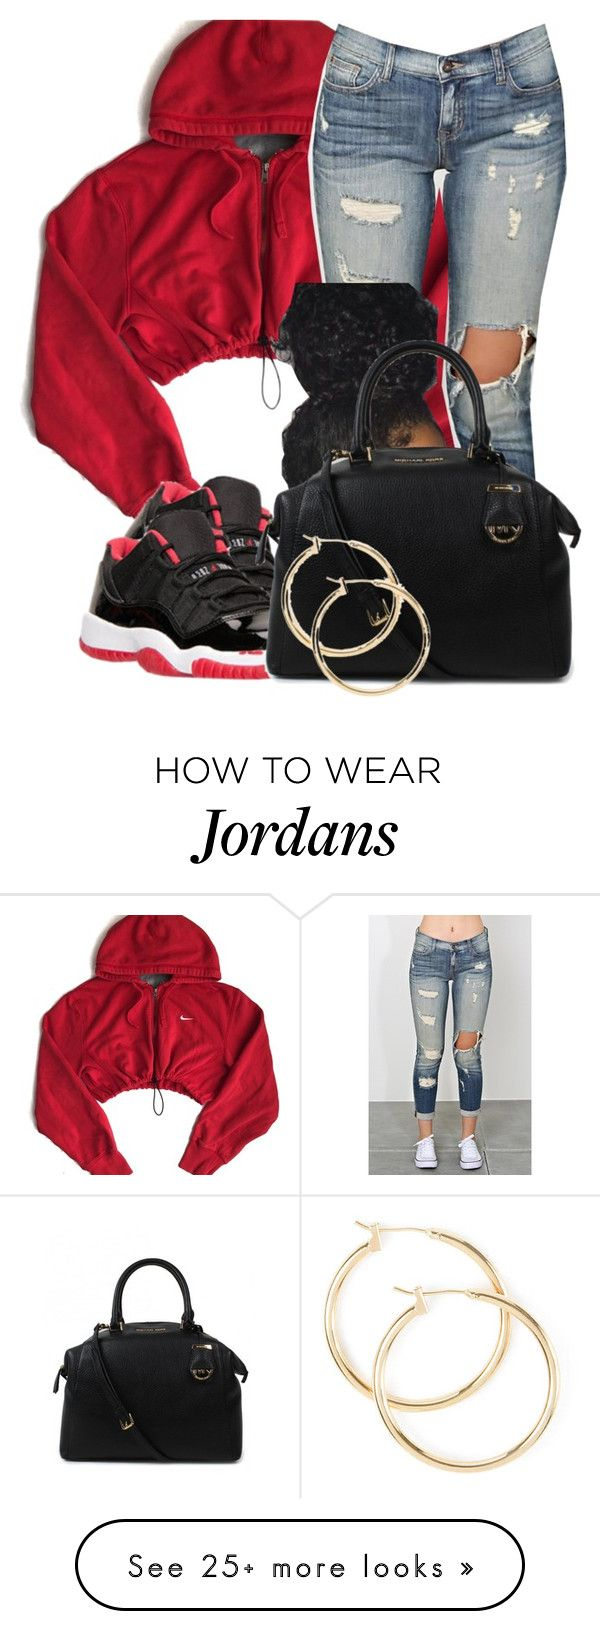 """Untitled #145"" by jaziscomplex on Polyvore featuring NIKE, Retrò, Michael Kors, women's clothing, women's fashion, women, female, woman, misses and juniors"